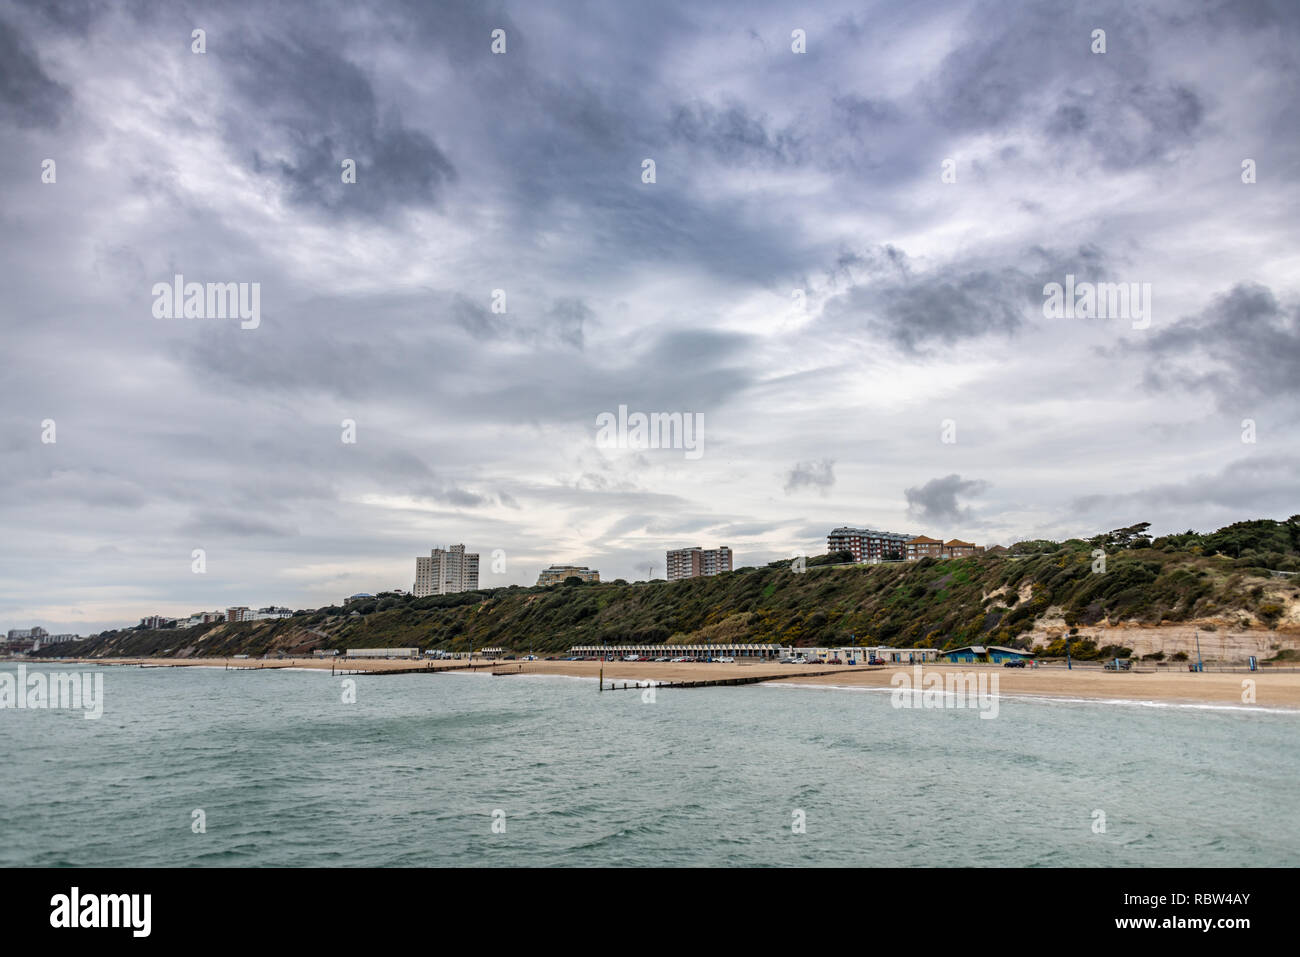 Bournemouth, Dorset, UK. 12th January 2019. Overcast weather over the beach in Bournemouth in Dorset. Credit: Thomas Faull/Alamy Live News Stock Photo